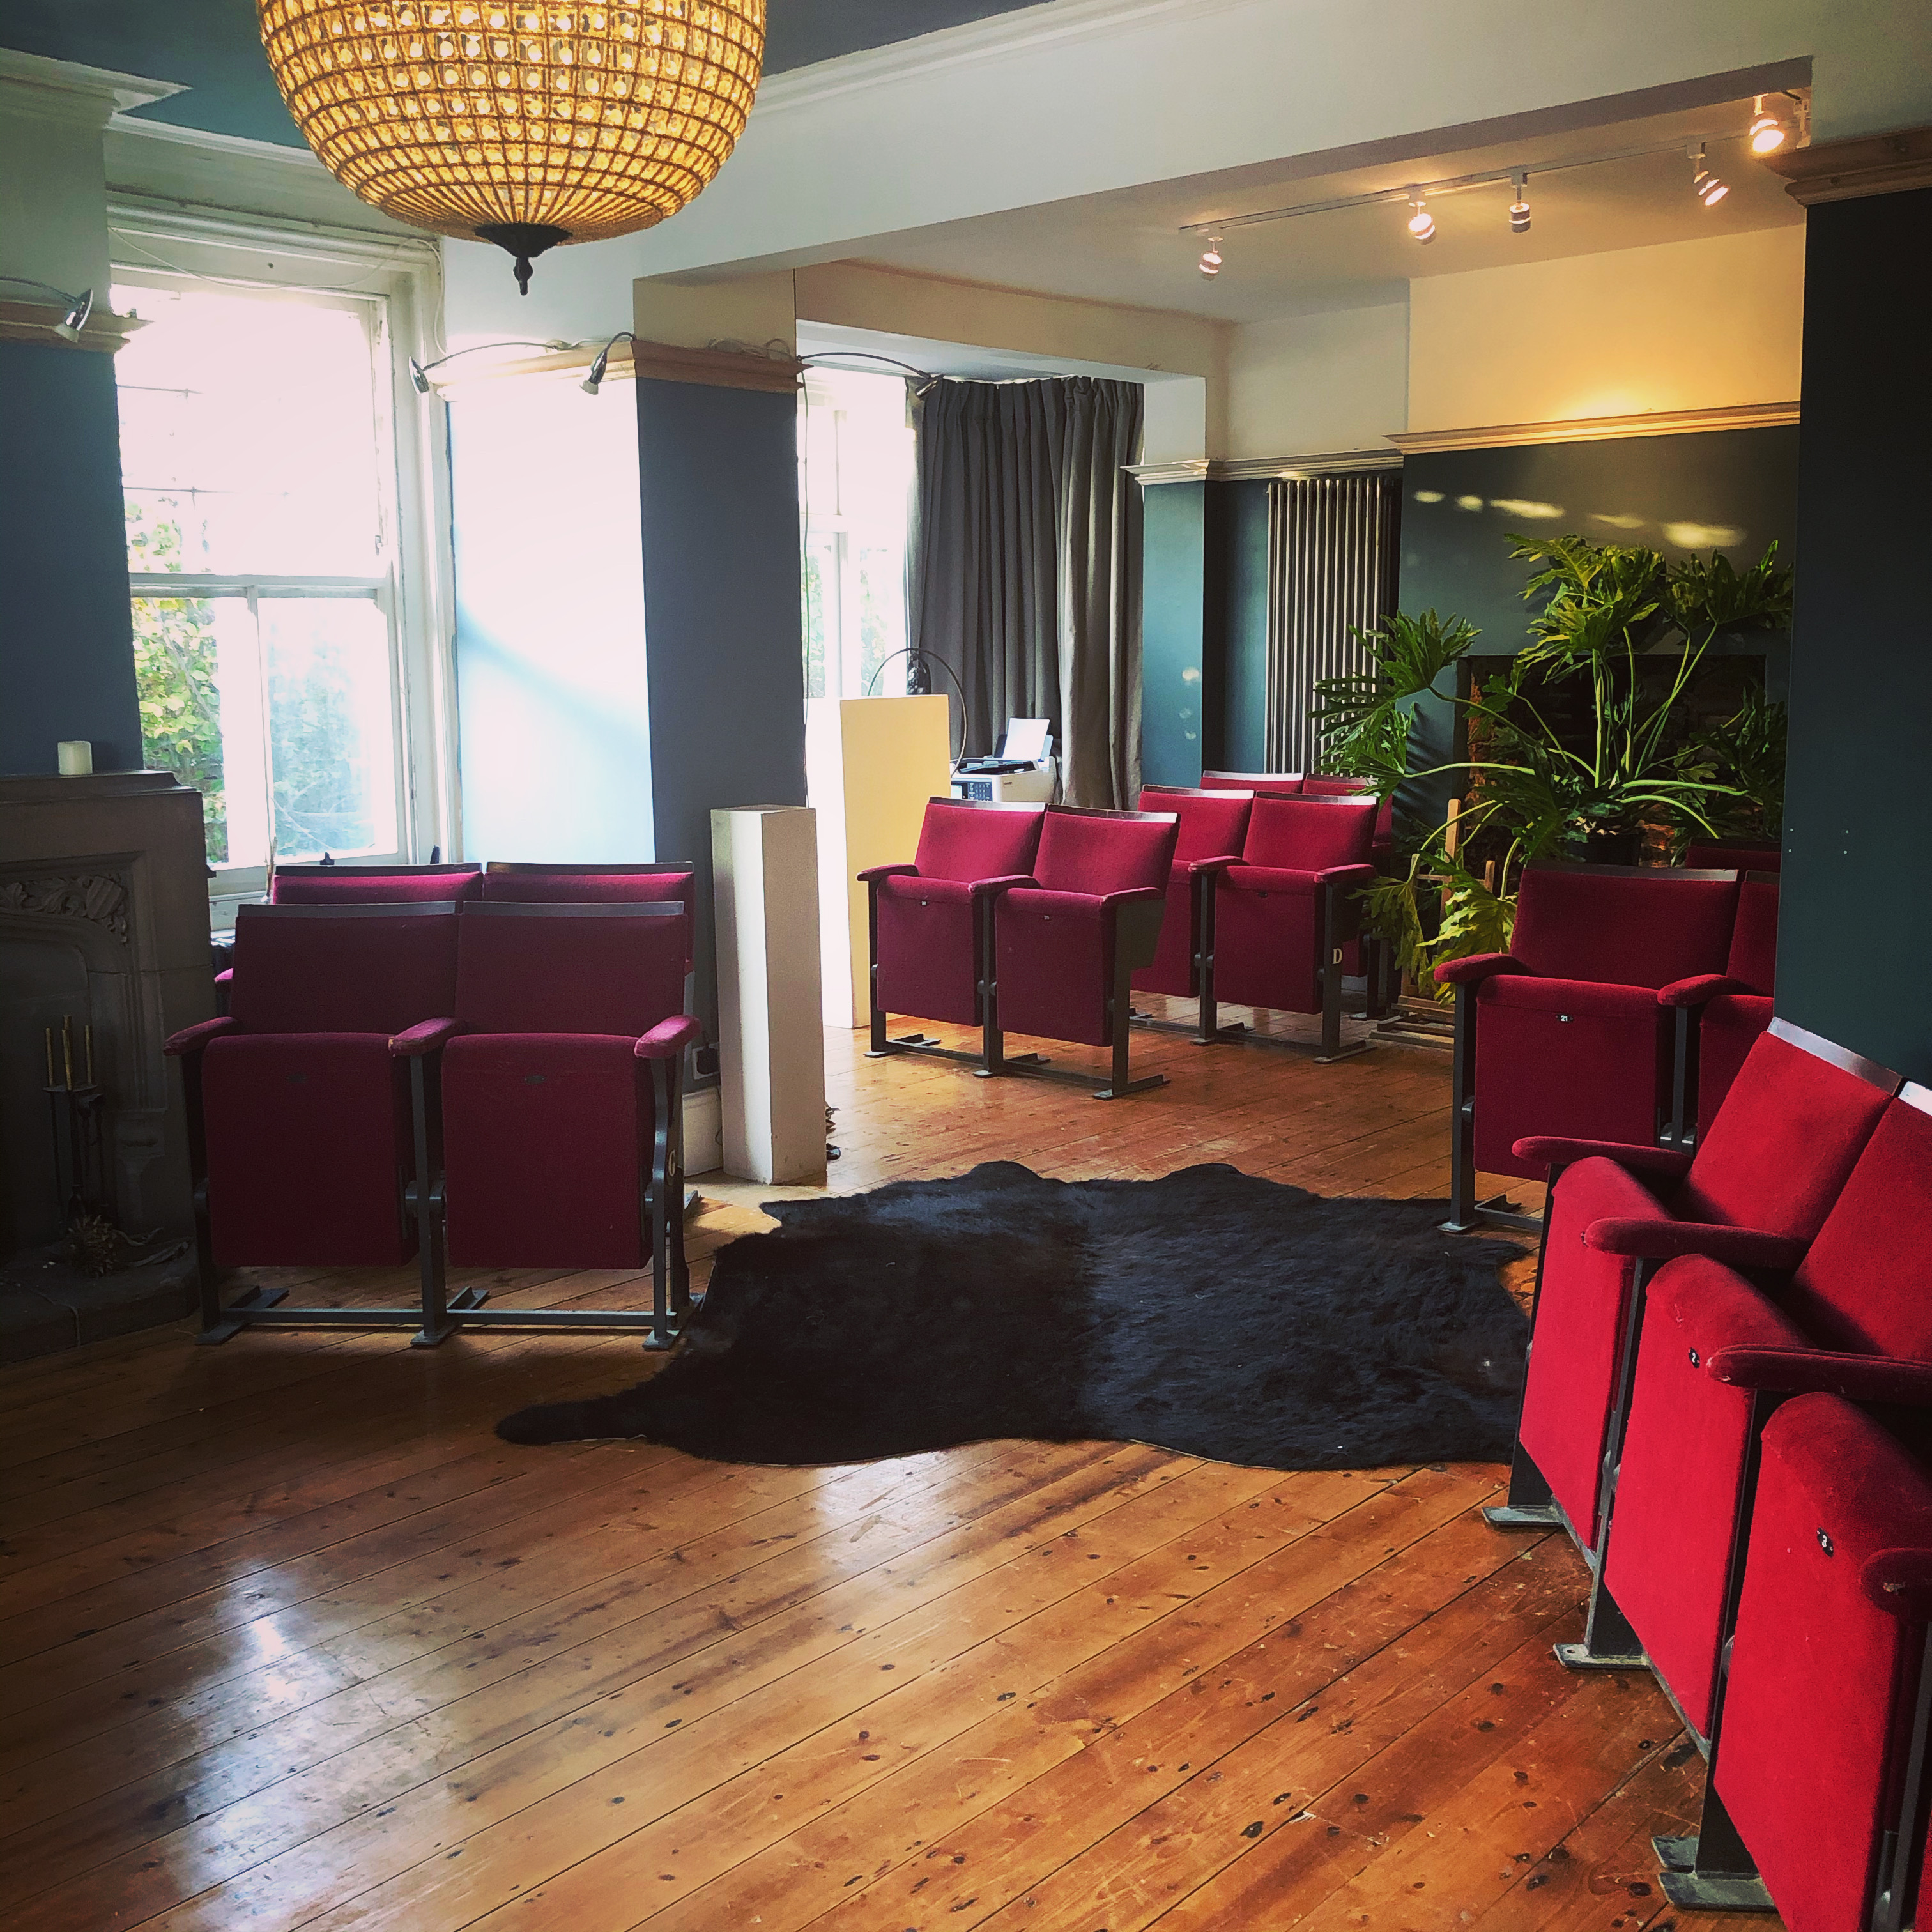 Cinema seats in main room